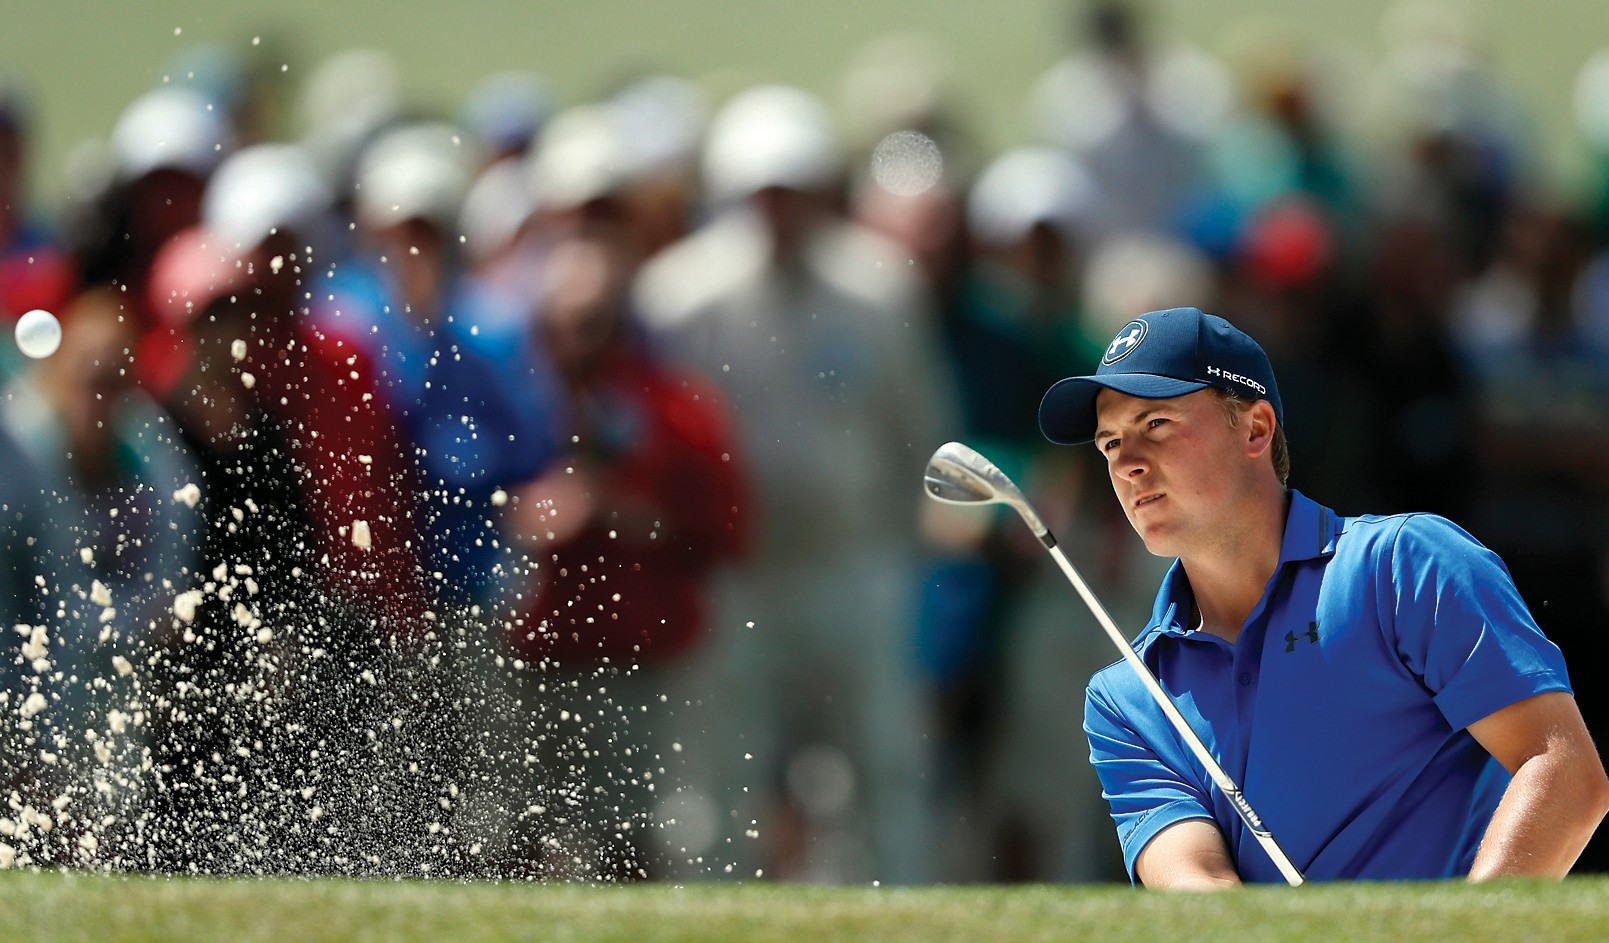 Jordan Spieth hits from a bunker on the seventh hole during the second round of the Masters Friday in Augusta, Ga.